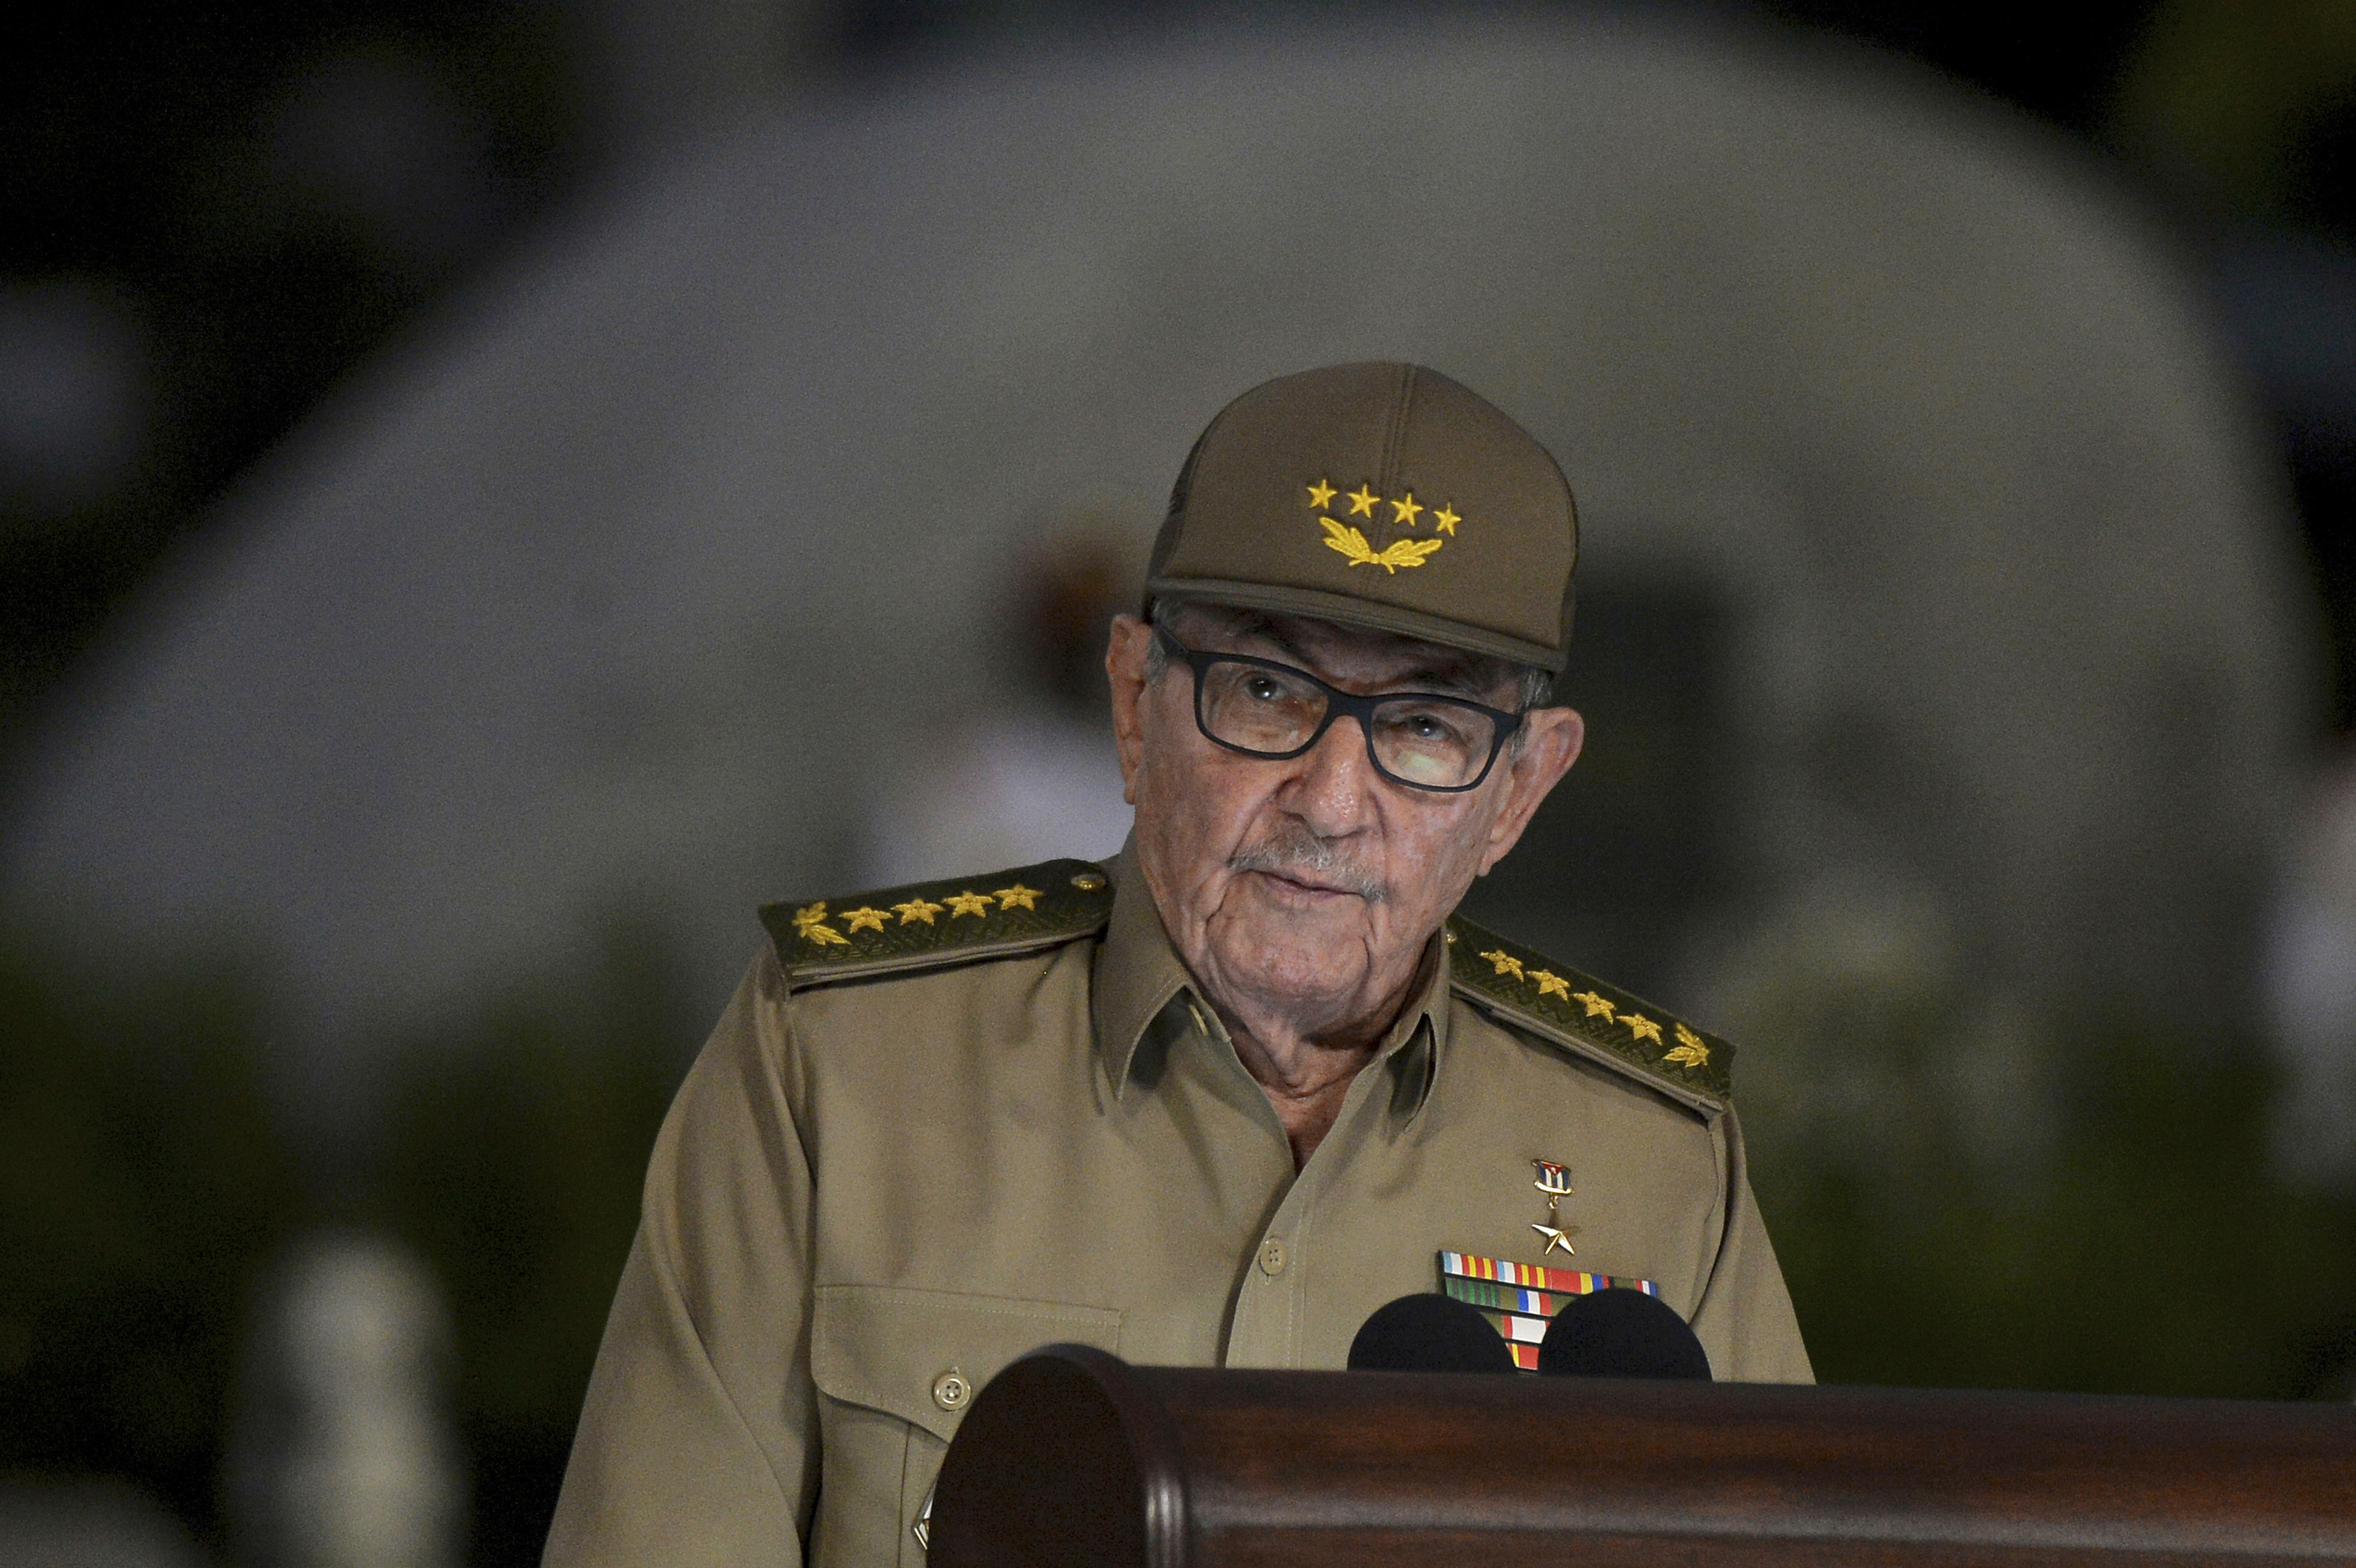 Raul Castro Confirms He's Resigning, Ending Long Era in Cuba – NBC 5 Dallas-Fort Worth